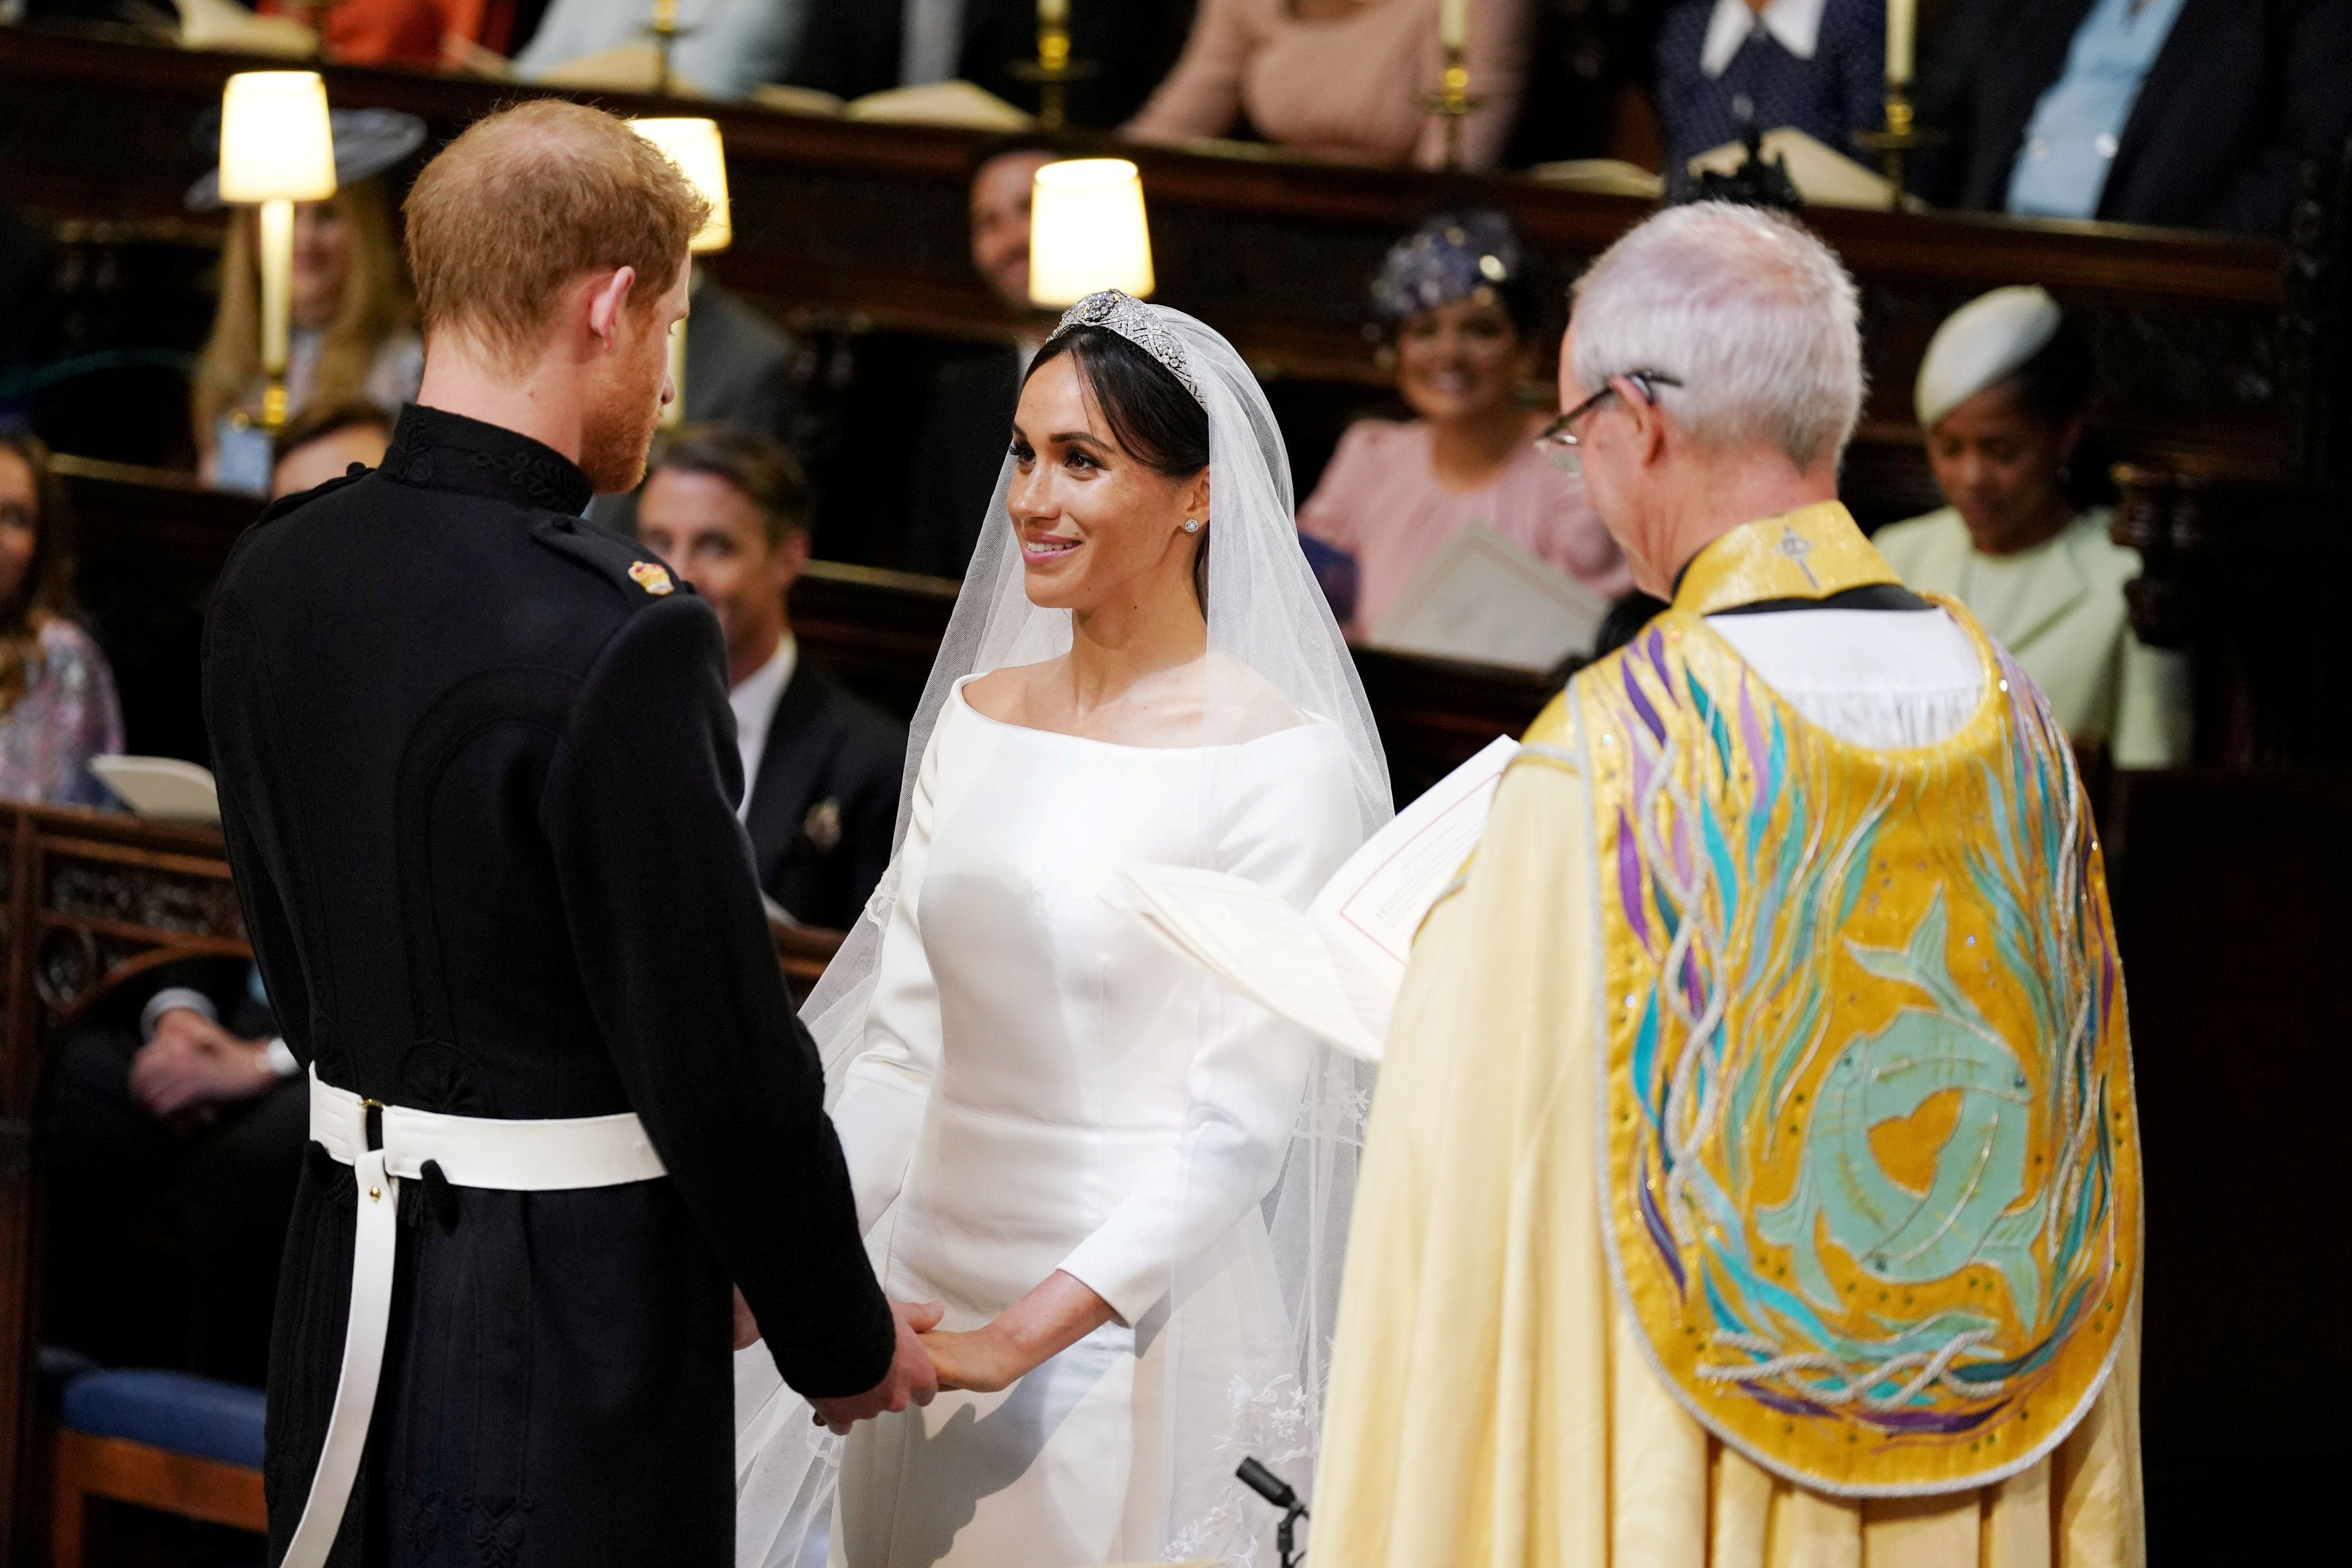 Prince Harry and Meghan Markle in St George's Chapel at Windsor Castle during their wedding service, conducted by the Archbis